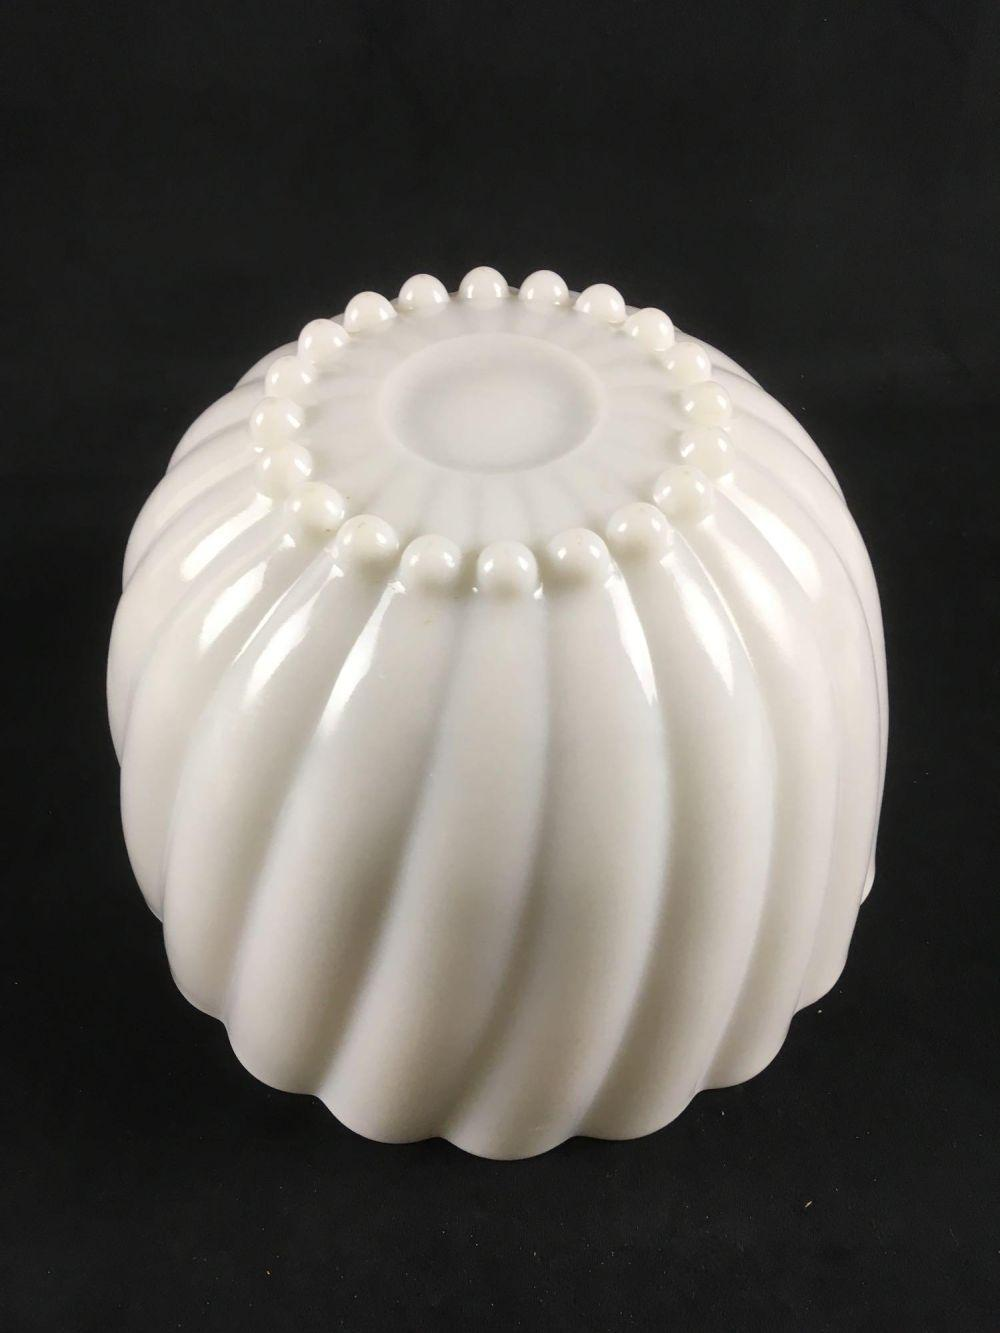 Lot 184: Vintage White Milk Glass Punch Set Bowl and 6 Cups